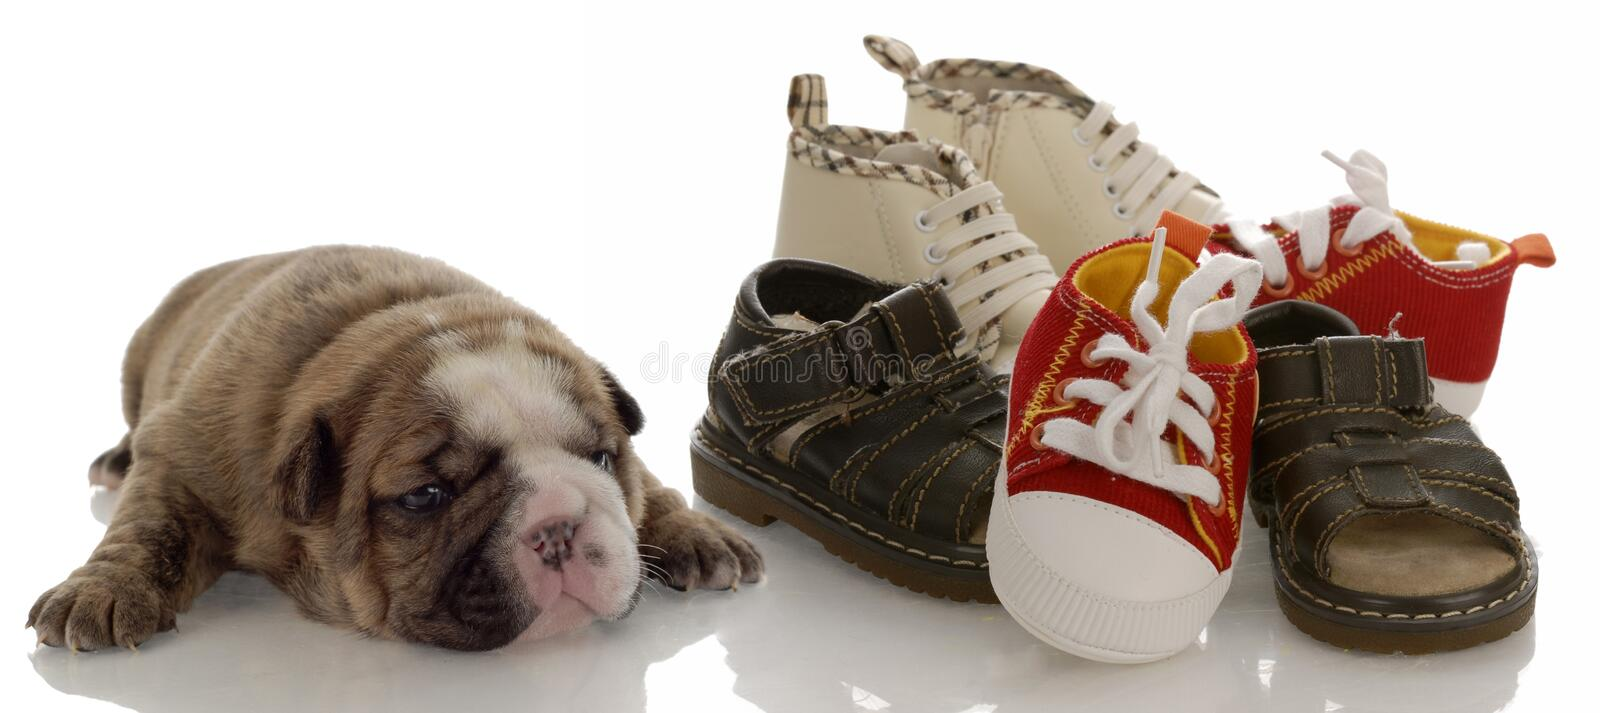 New puppy and new baby shoes